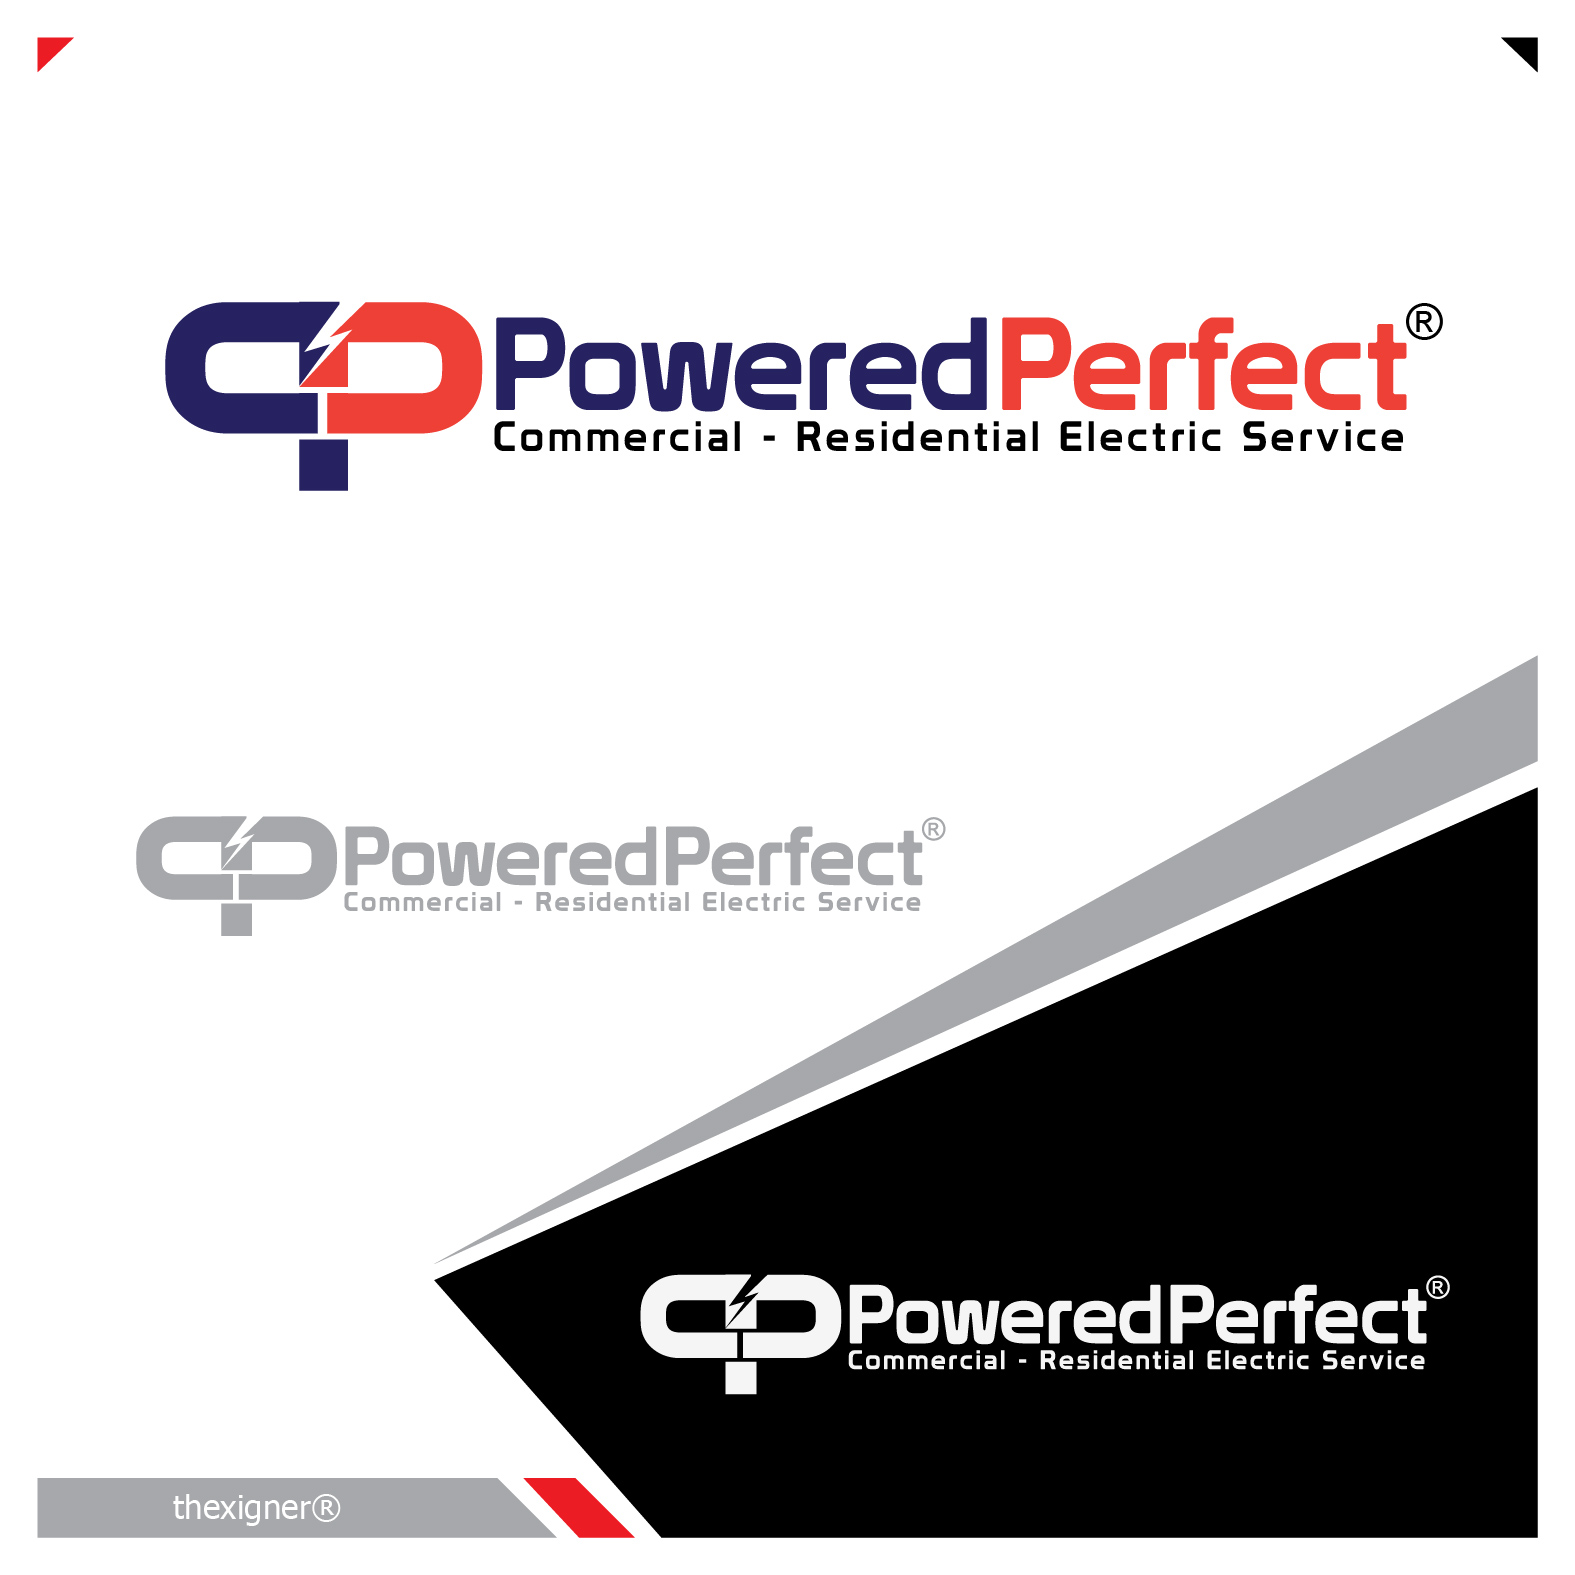 Logo Design by lagalag - Entry No. 10 in the Logo Design Contest Captivating Logo Design for Powered Perfect.